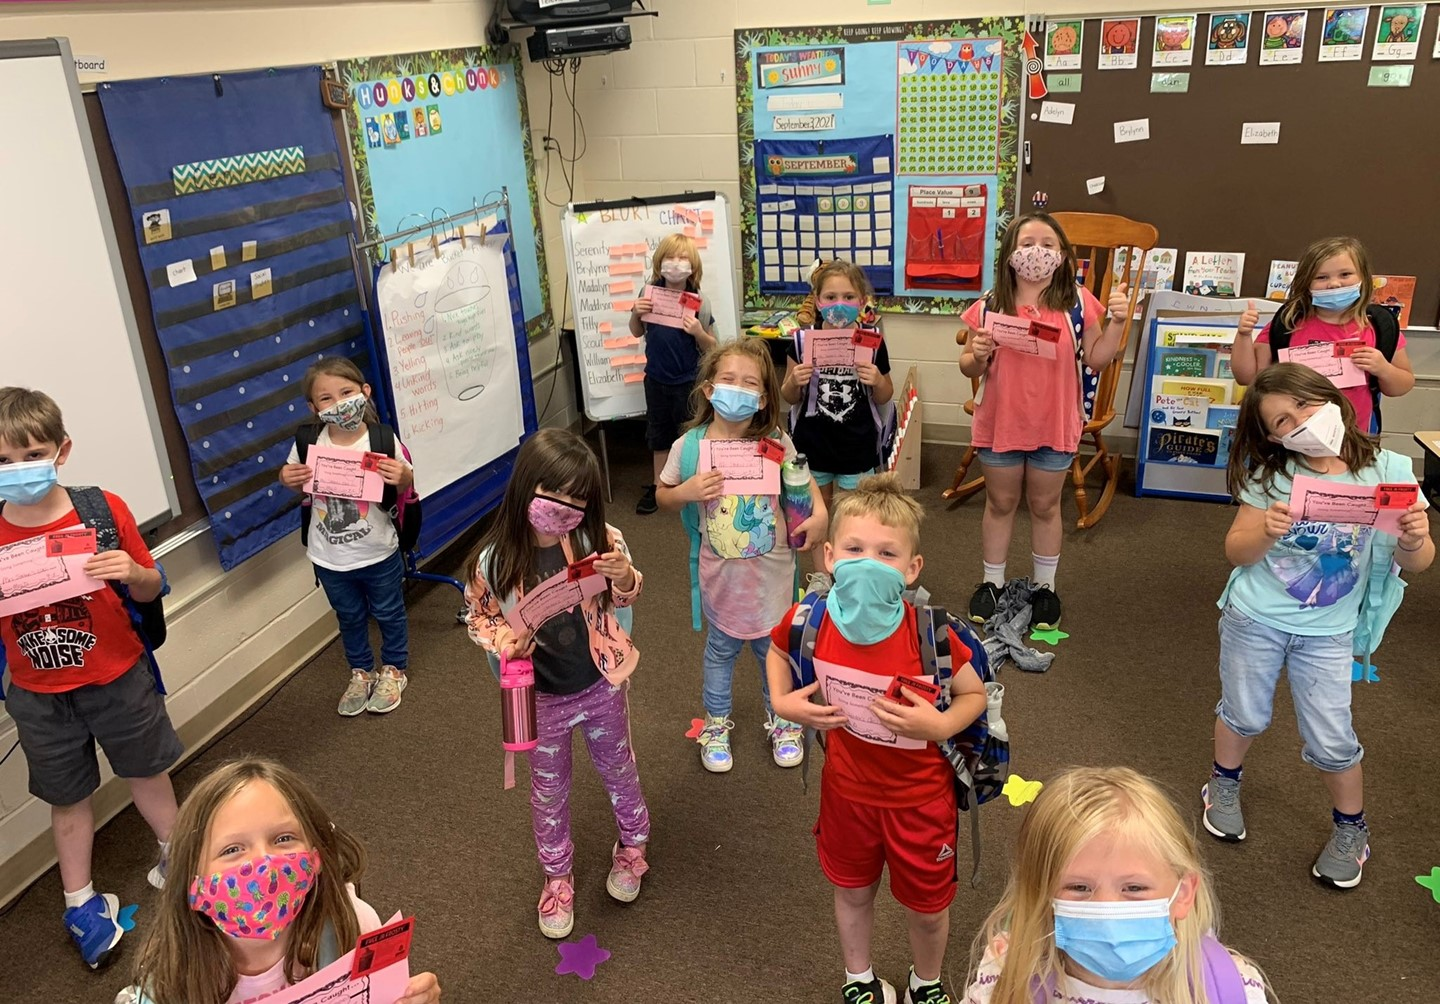 Students in masks showing their success certificates.